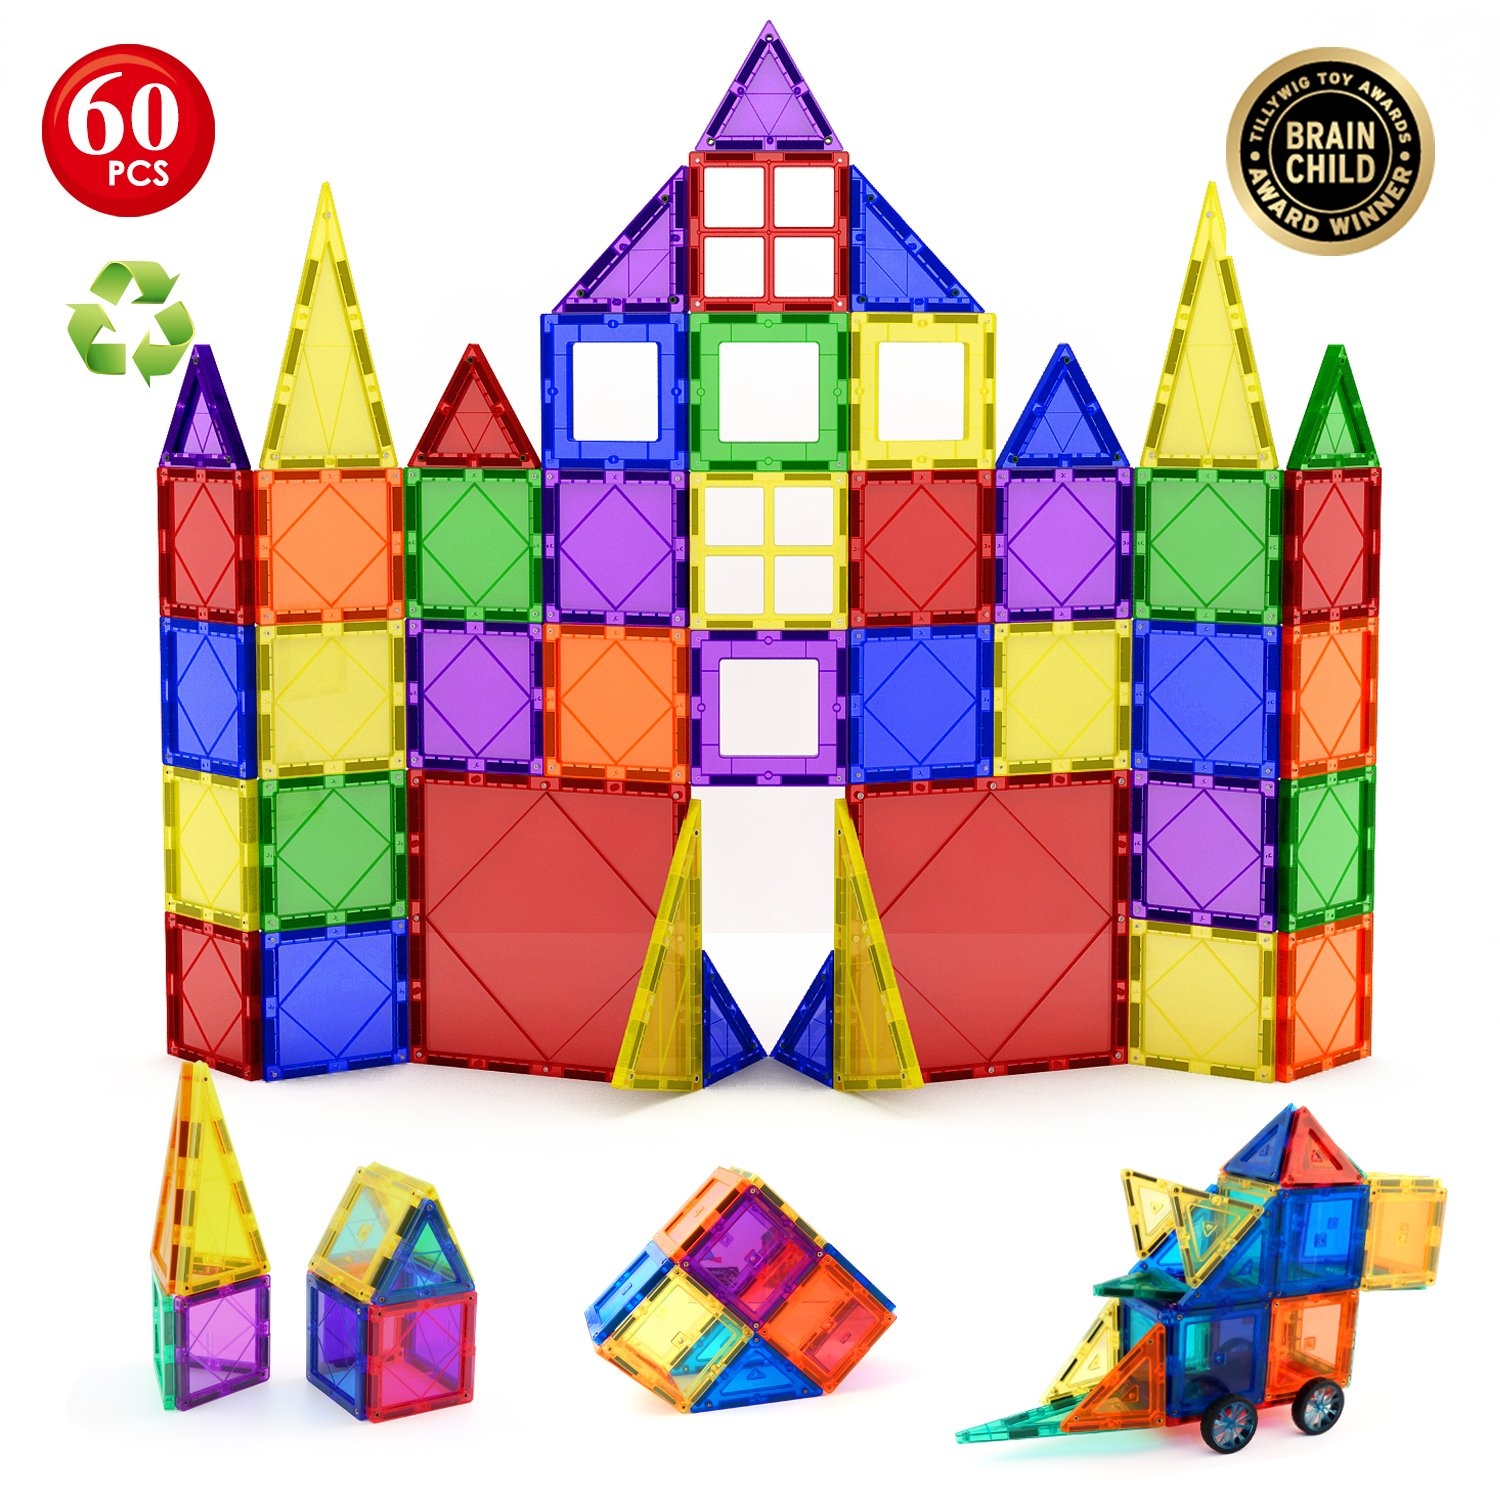 Children Hub 60pcs Magnetic Tiles Set - 3D Magnet Building Blocks - Premium Quality Educational Toys for Your Kids - Upgraded Version with Strong Magnets - Creativity, Imagination, Inspiration Review